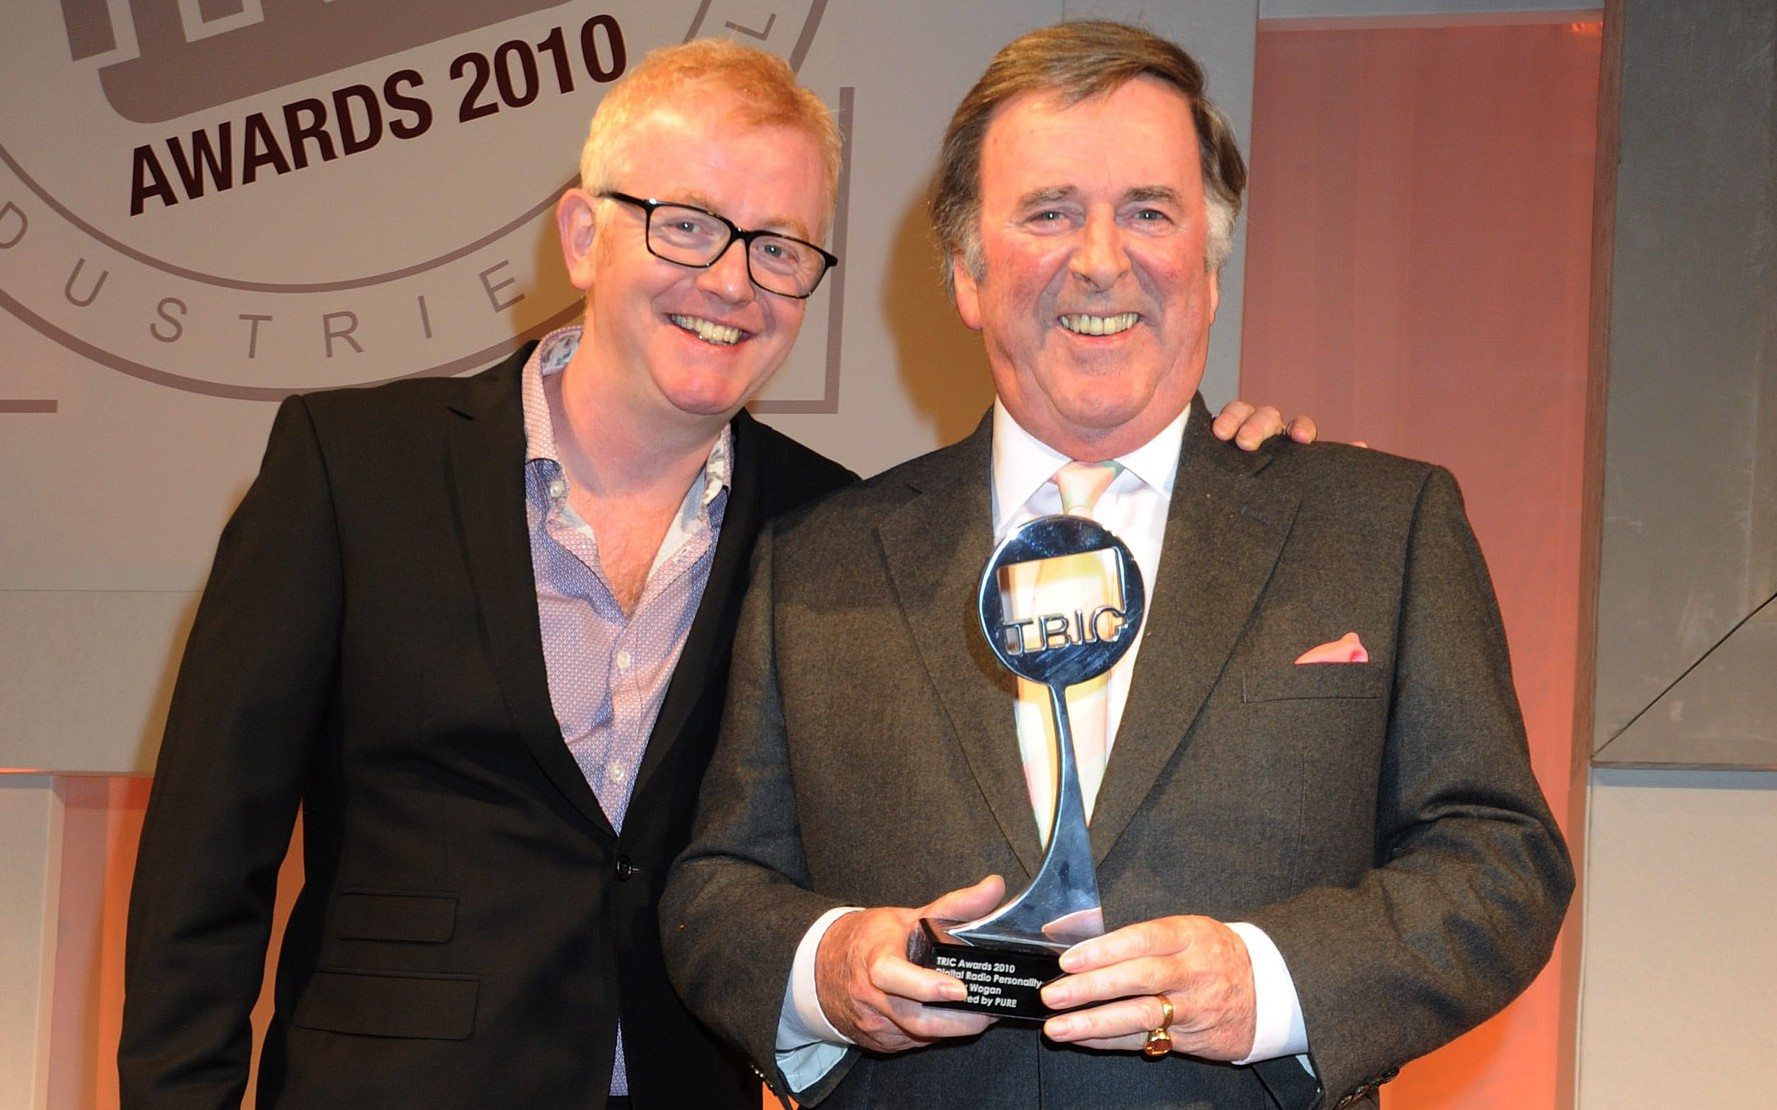 Chris Evans dedicated his entire Radio 2 show to Sir Terry Wogan